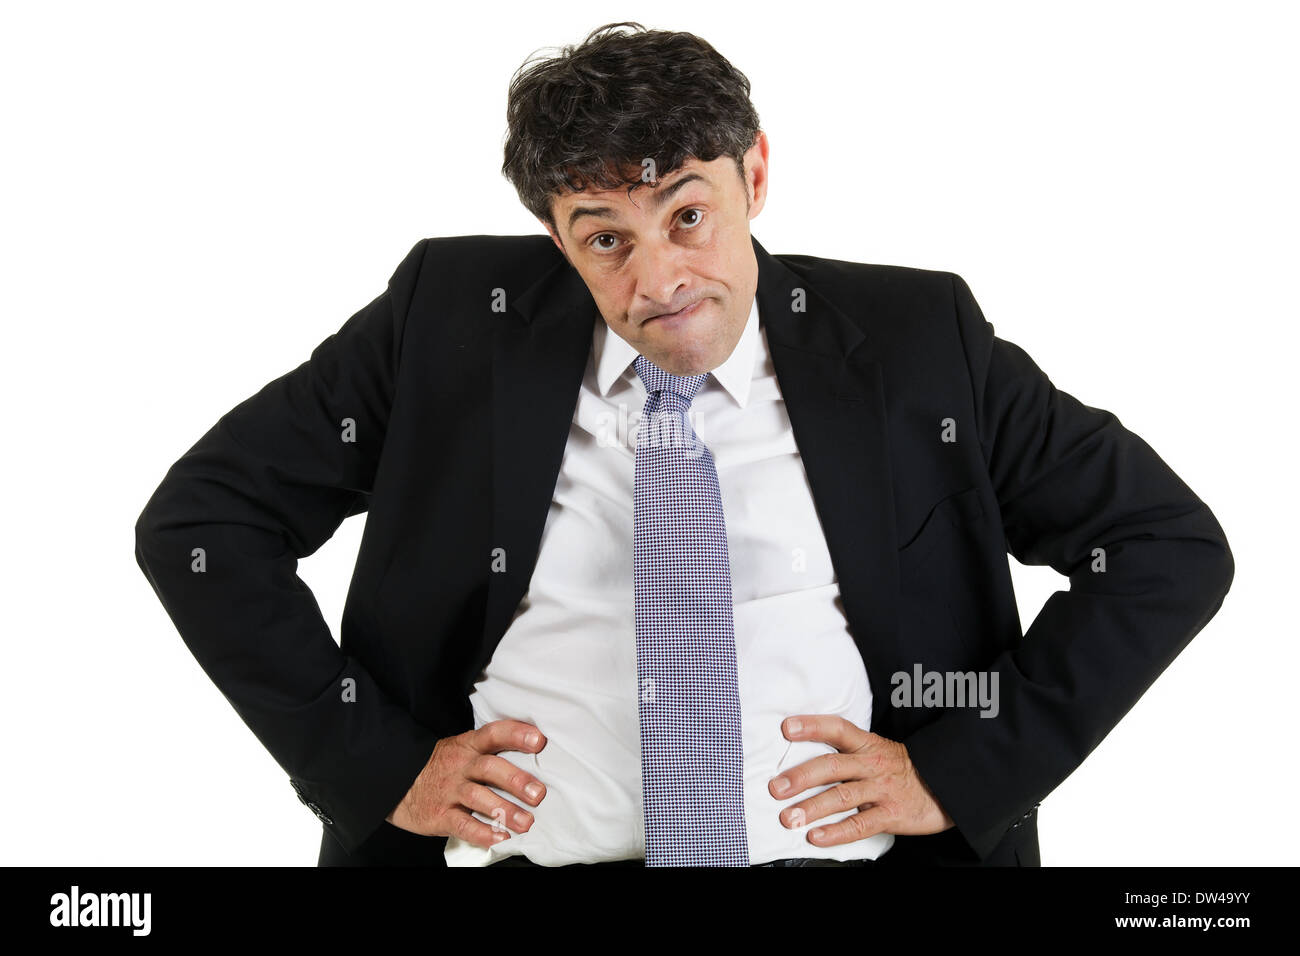 Businessman emphasising a point standing with his hands akimbo on his hips and head lowered glaring with raised eyebrows - Stock Image